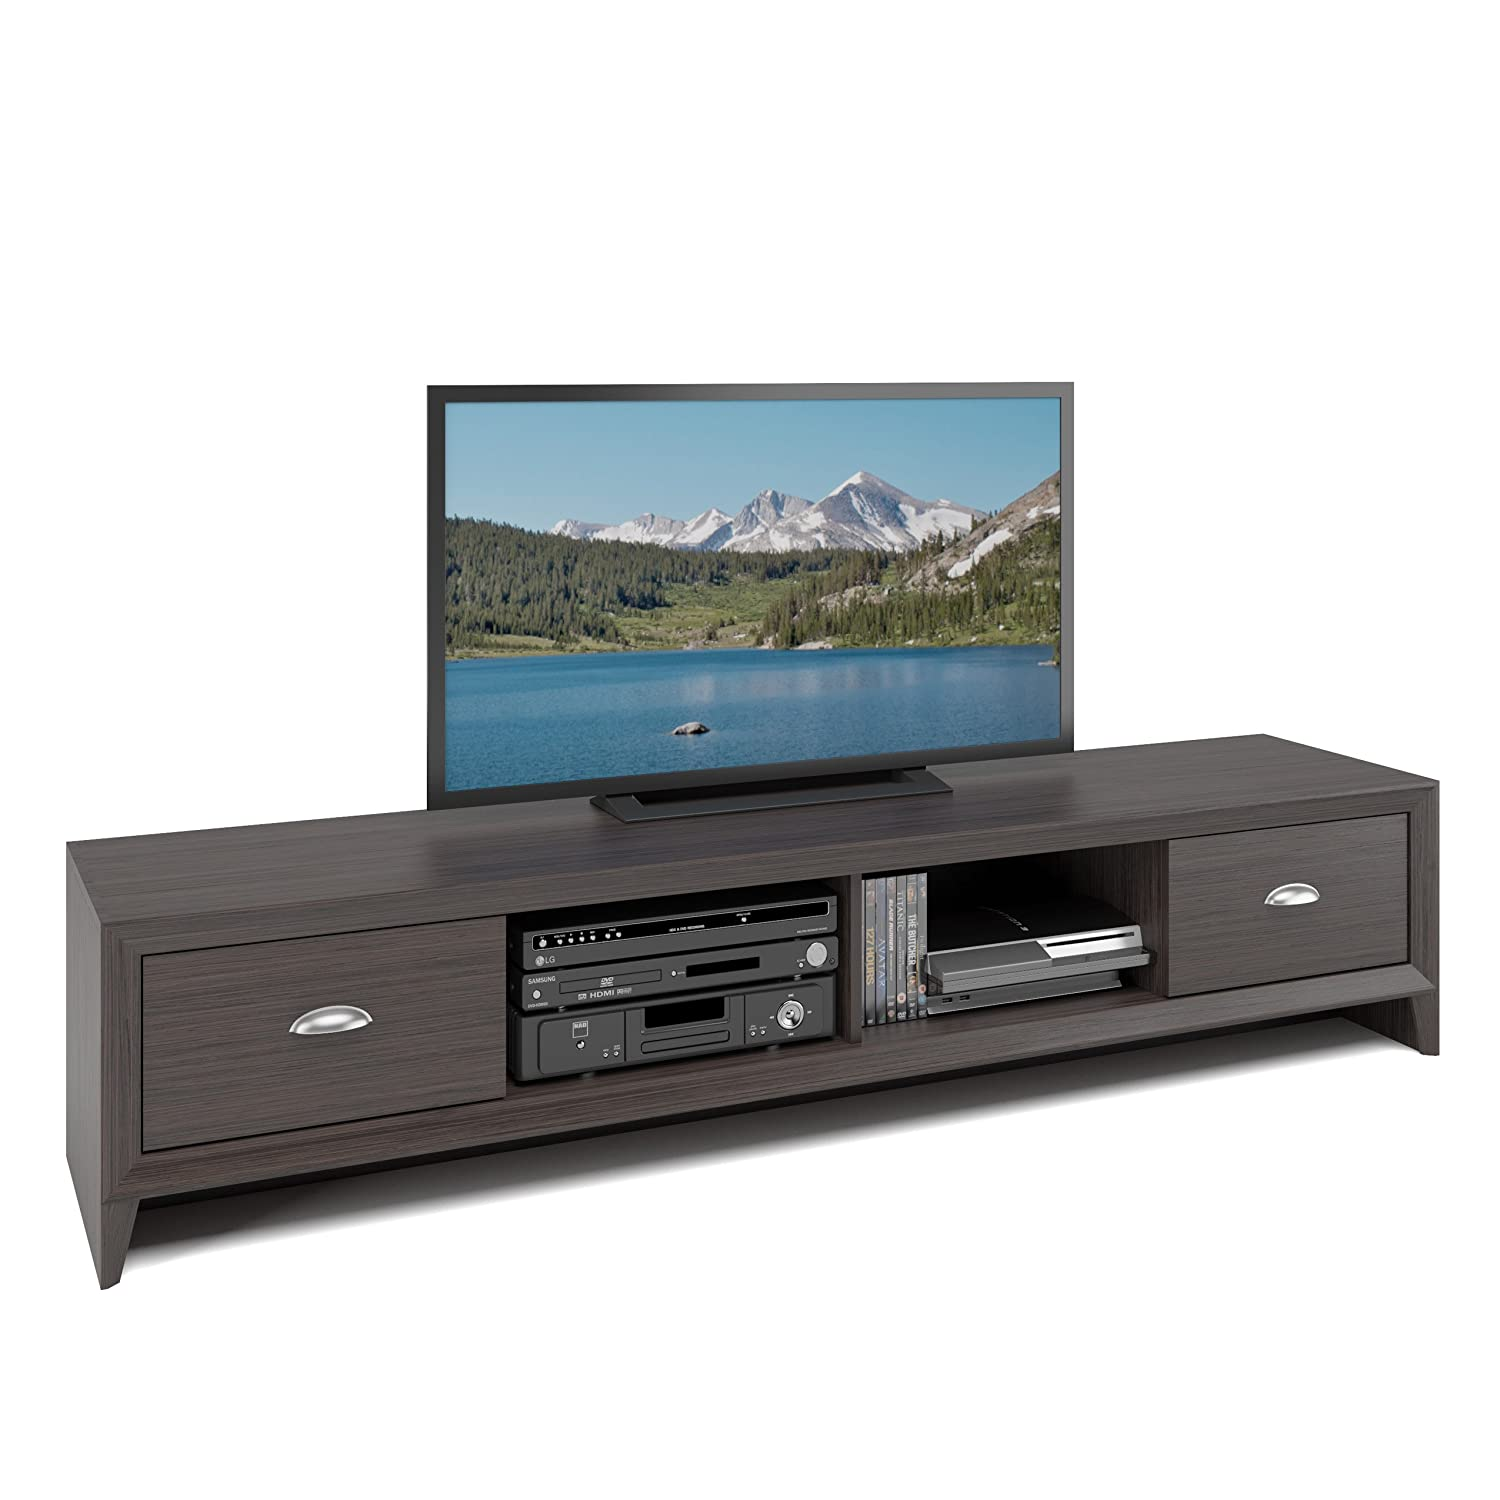 CorLiving TLK-872-B Lakewood Extra Wide TV Bench in Modern Wenge Finish Corporate Images